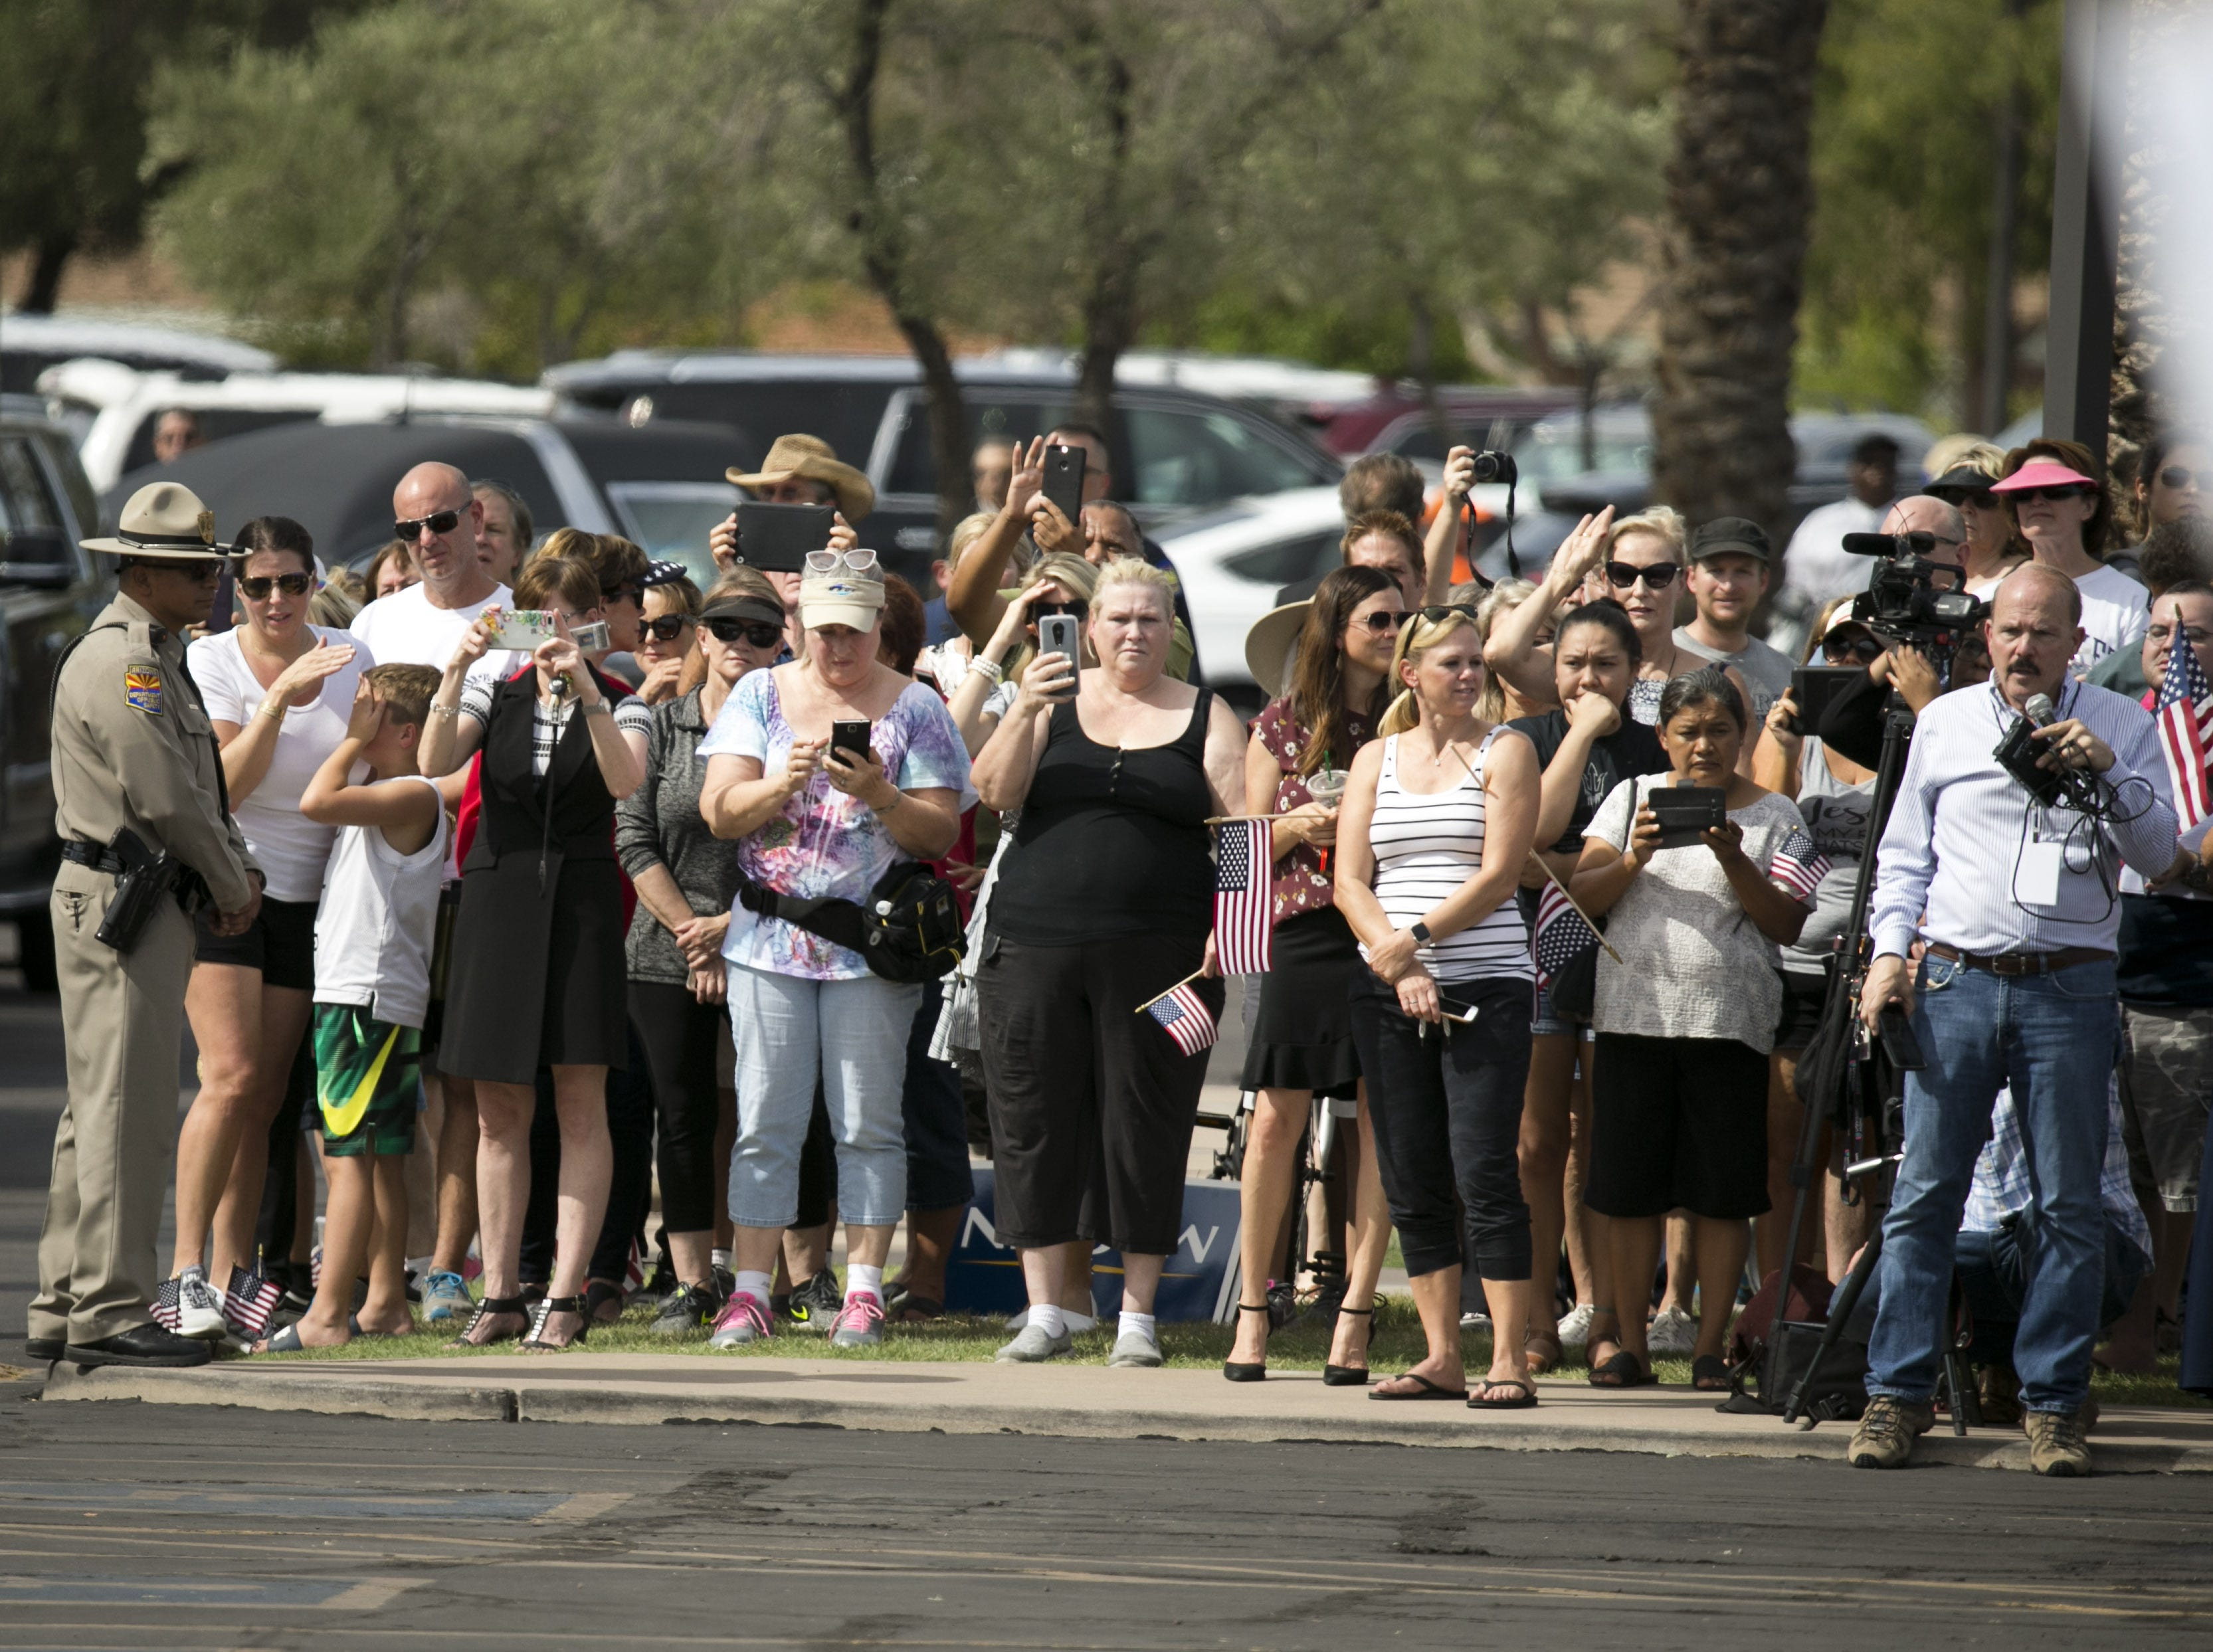 People wait for the motorcade to arrive before a memorial service for Senator John McCain at North Phoenix Baptist Church in Phoenix, Aug. 30, 2018.